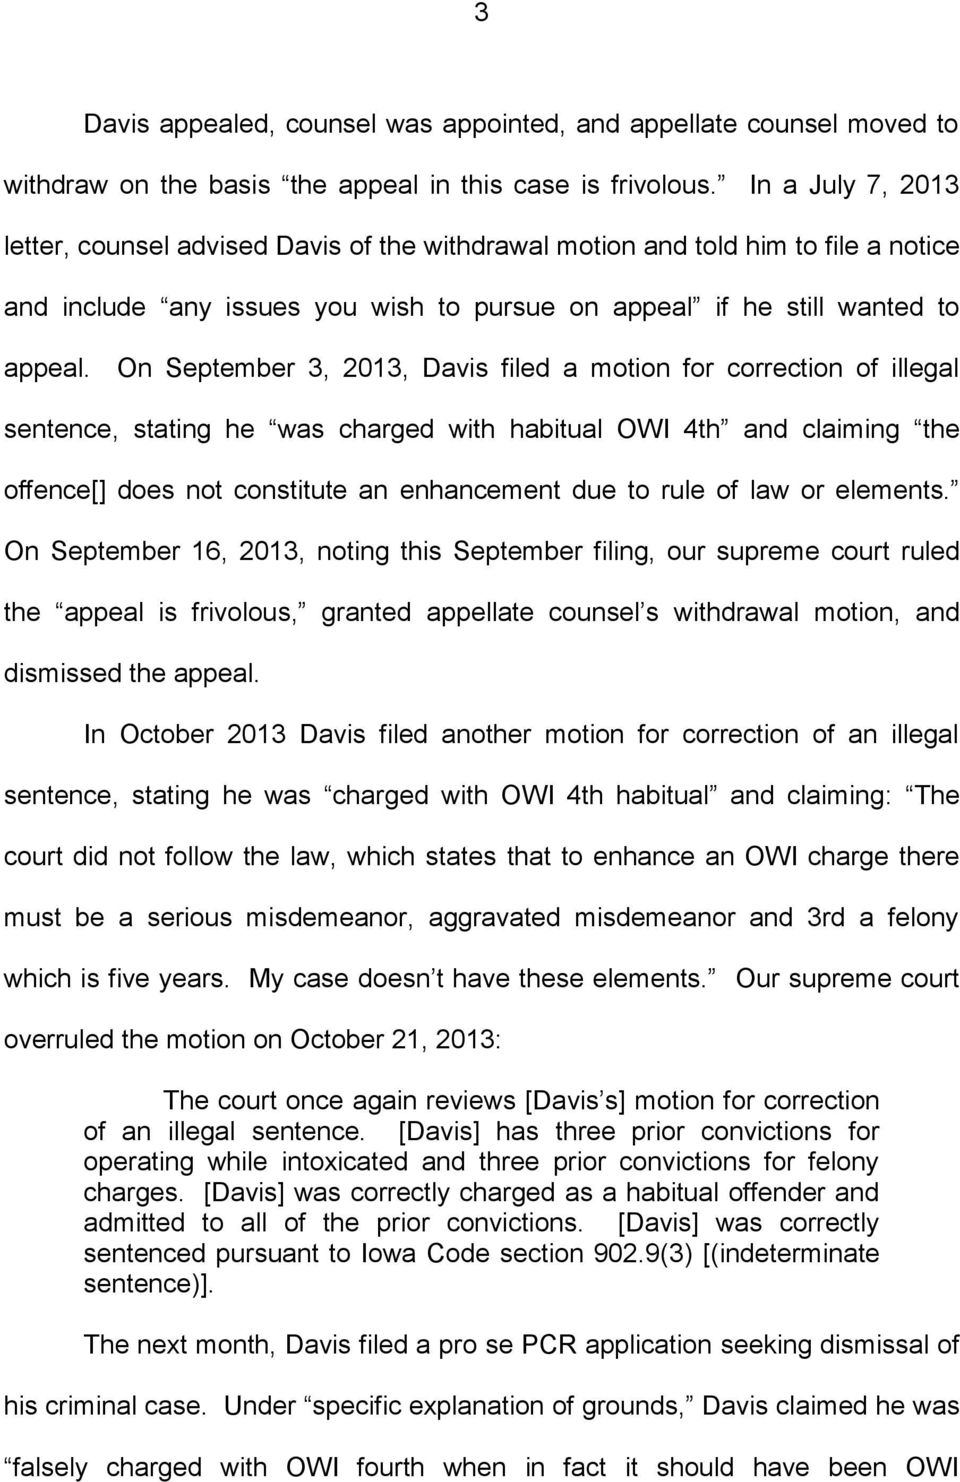 On September 3, 2013, Davis filed a motion for correction of illegal sentence, stating he was charged with habitual OWI 4th and claiming the offence[] does not constitute an enhancement due to rule